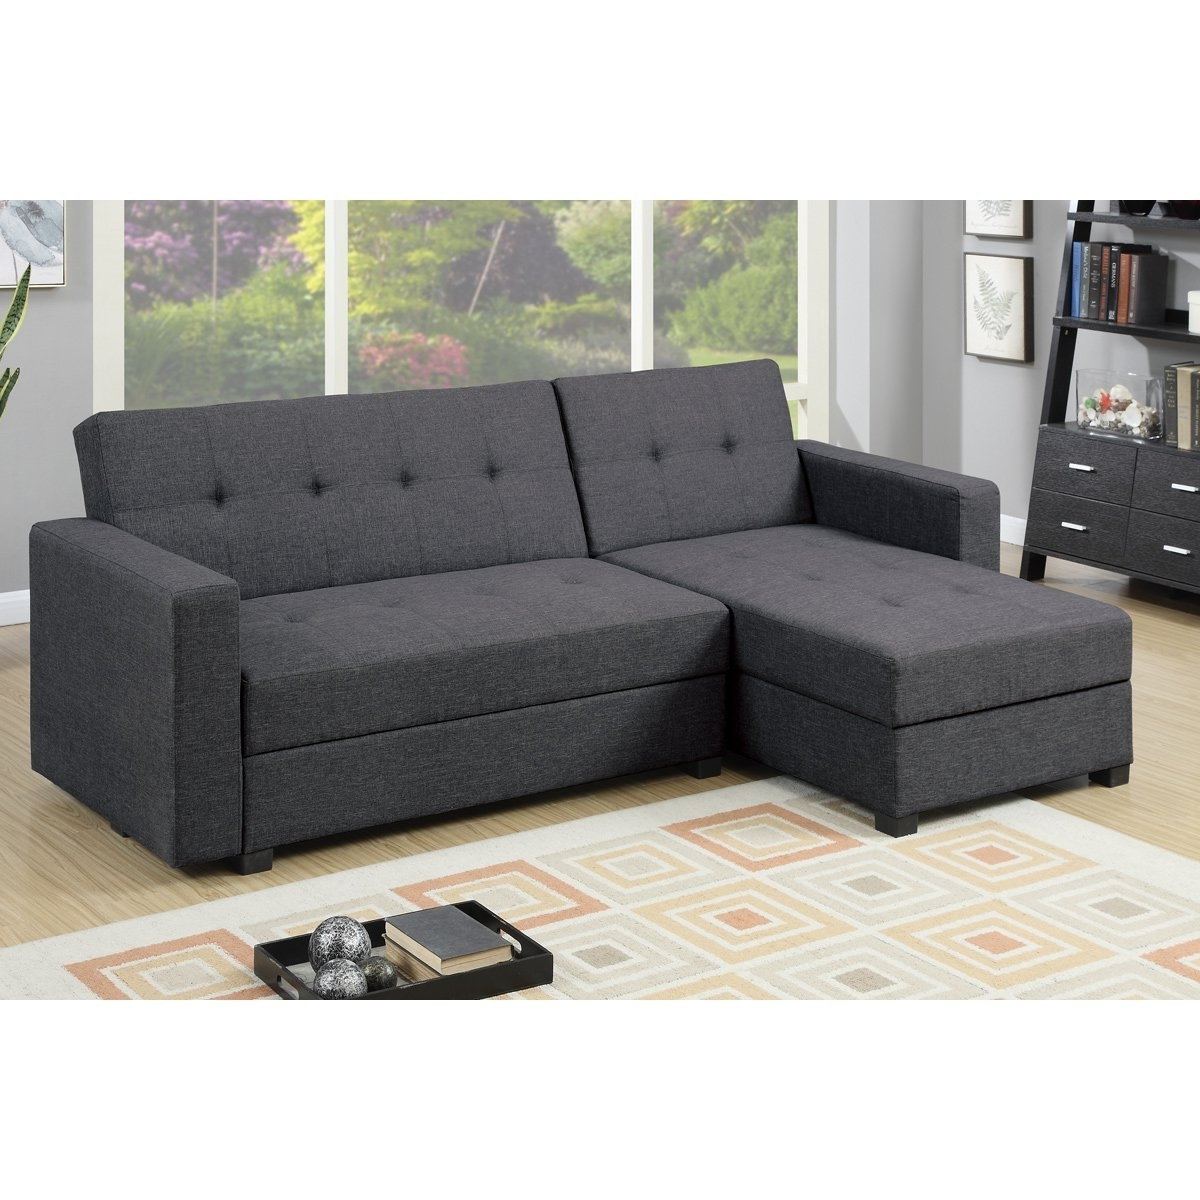 Trendy Furniture: Reversible Chaise Sectional For Comfortable Living Room Intended For Sectional Chaises (View 13 of 15)